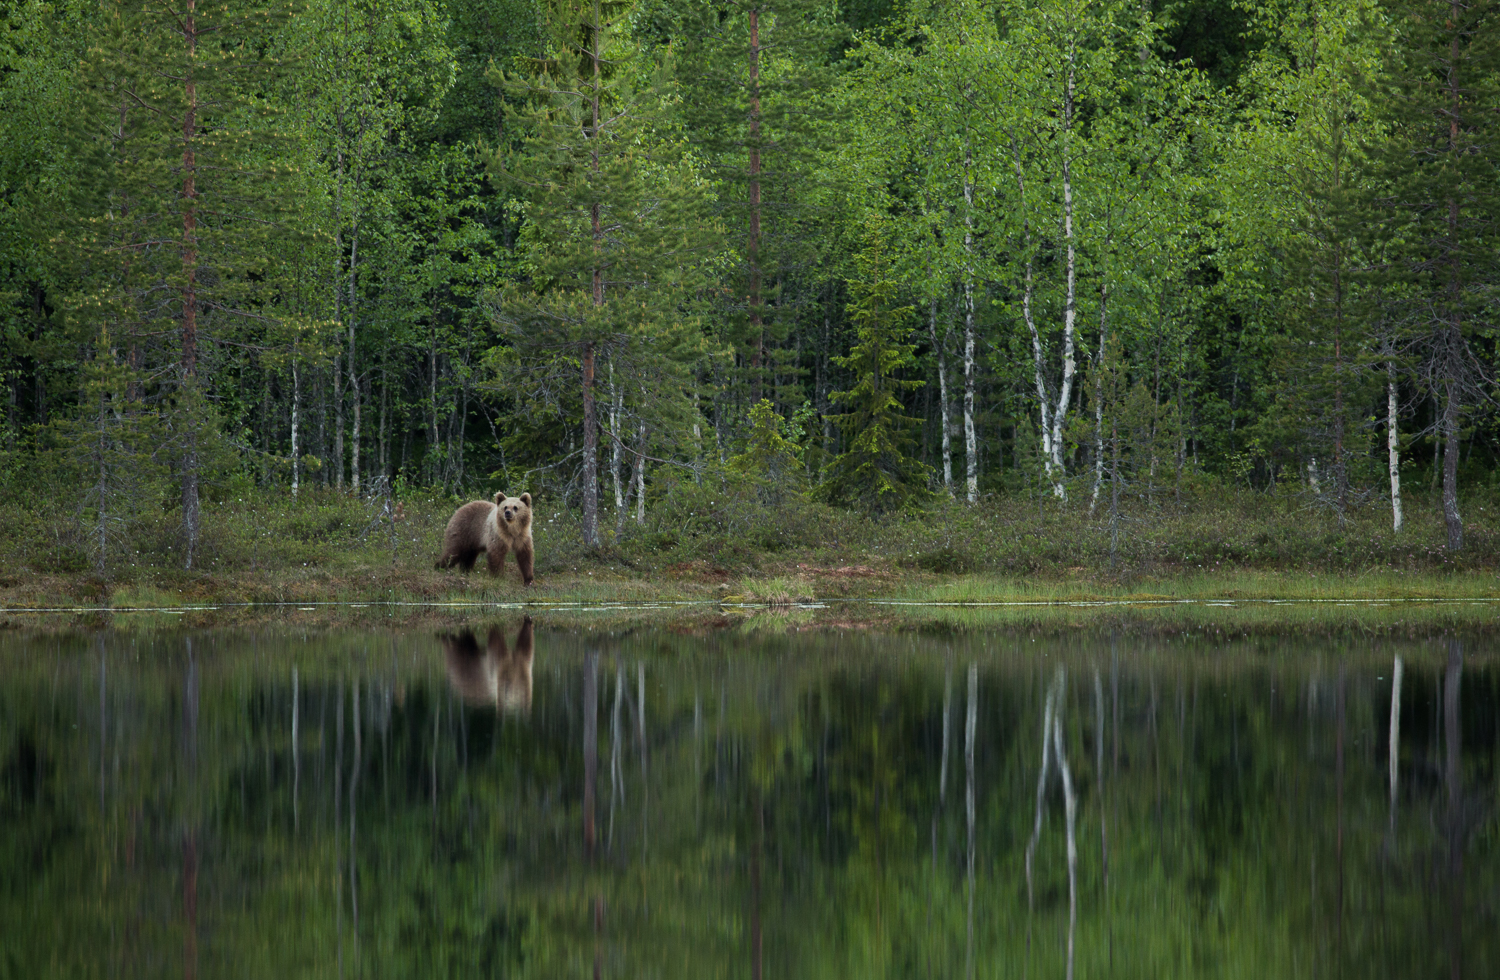 Brown bear photography tour Finland-2.jpg